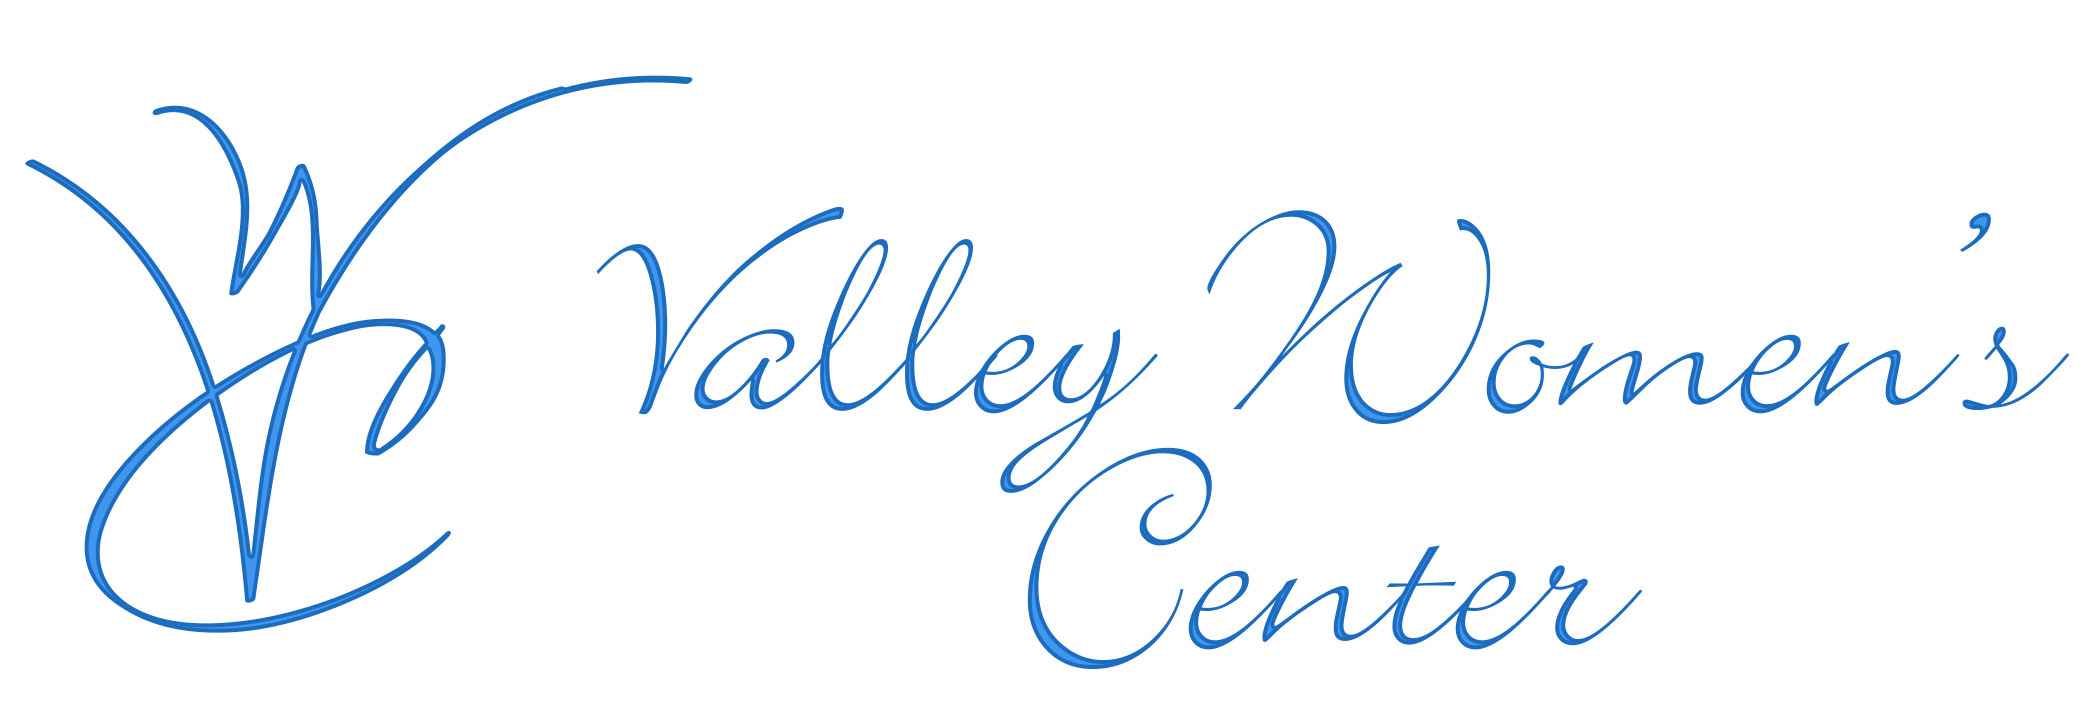 Valley Women's Center